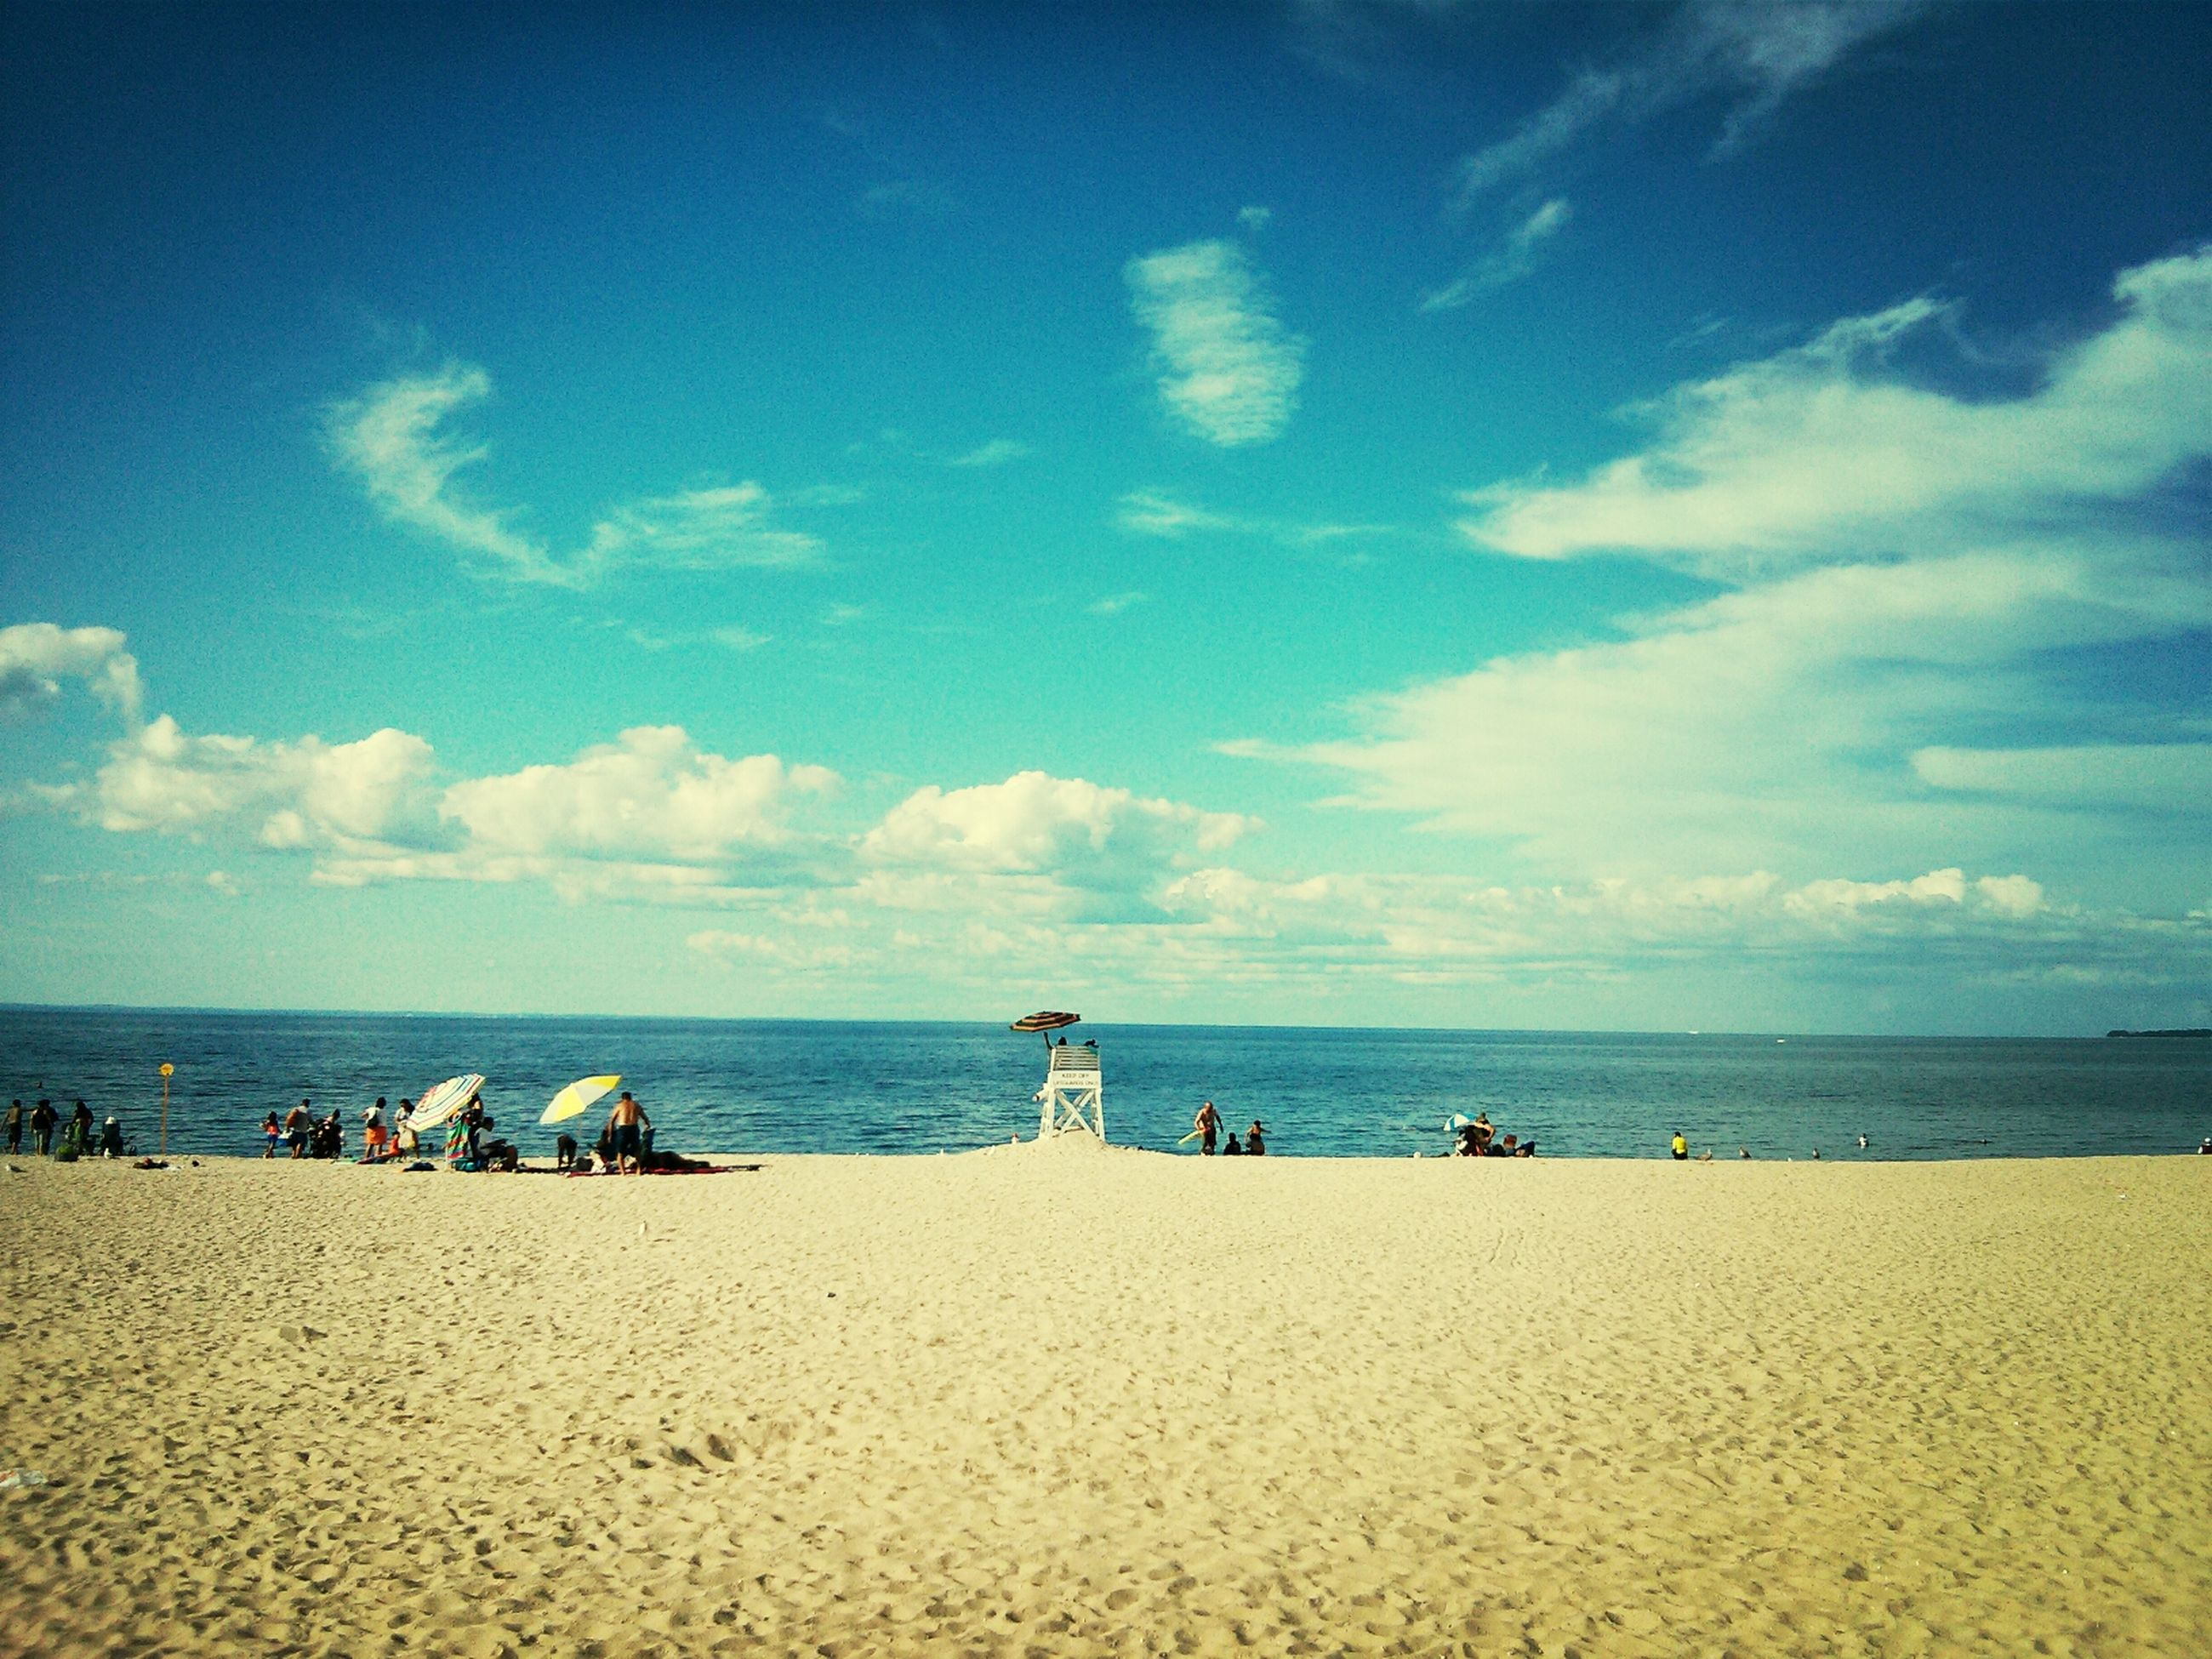 sea, beach, horizon over water, water, sky, sand, tranquil scene, tranquility, shore, scenics, beauty in nature, blue, vacations, nature, idyllic, cloud, relaxation, coastline, incidental people